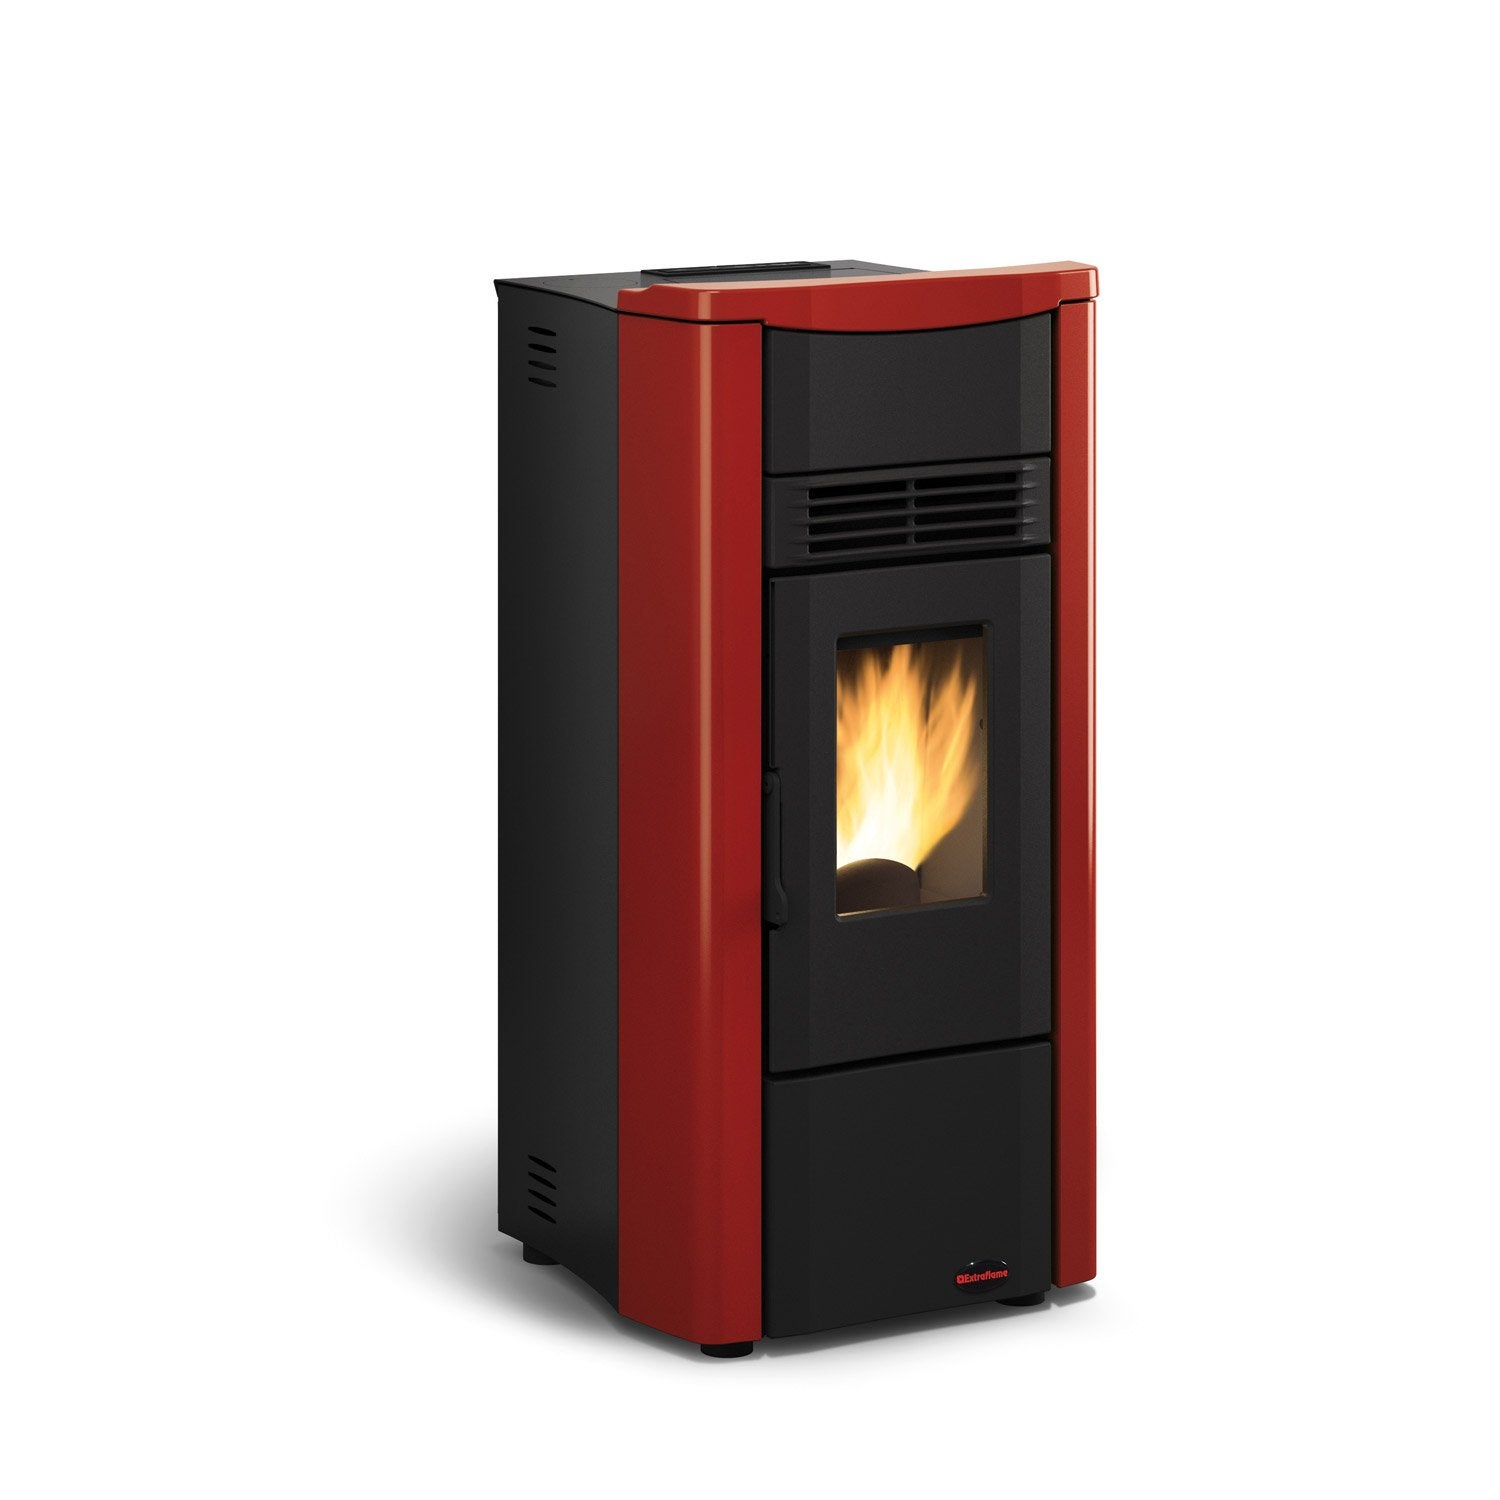 po le granul s extraflame giusy plus bordeaux 8 kw leroy merlin. Black Bedroom Furniture Sets. Home Design Ideas